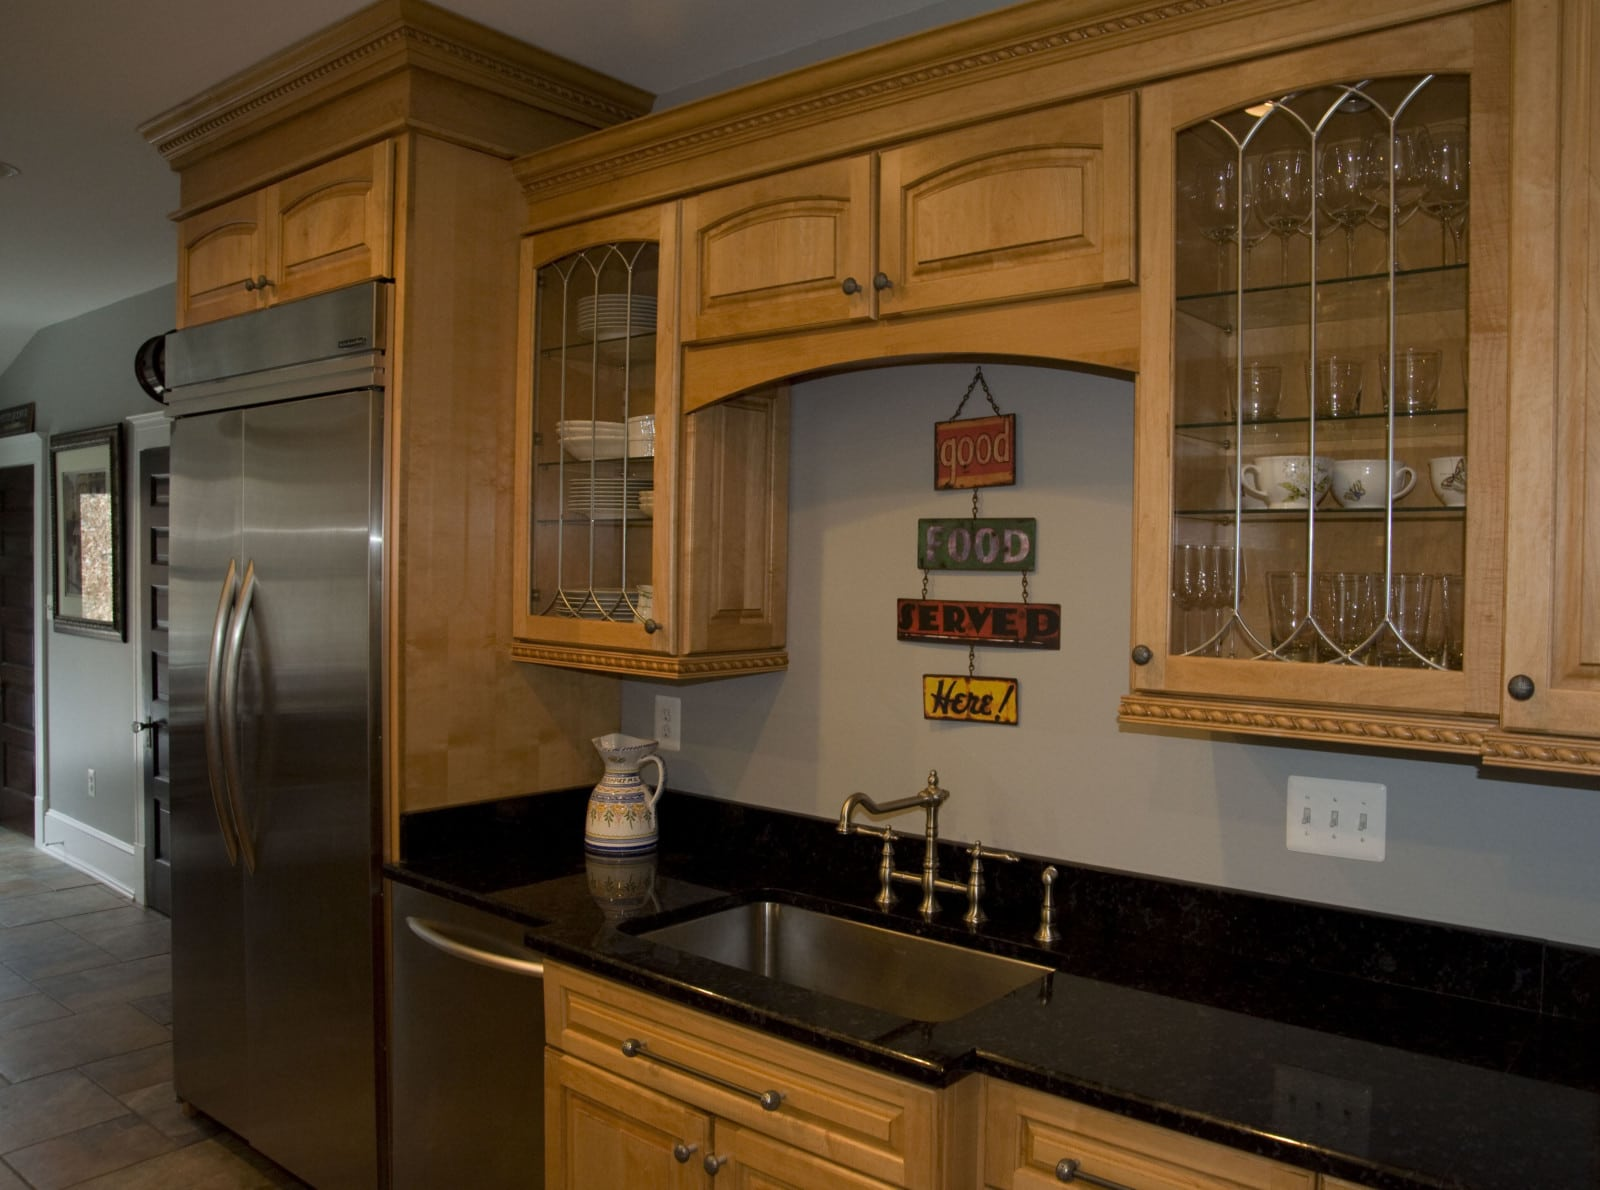 kitchen renovation contractor maryland,kitchen renovation,kitchen design service,kitchen renovations maryland,small kitchen design,kitchen improvement home,custom kitchens designers near you,green kitchen design remodeling